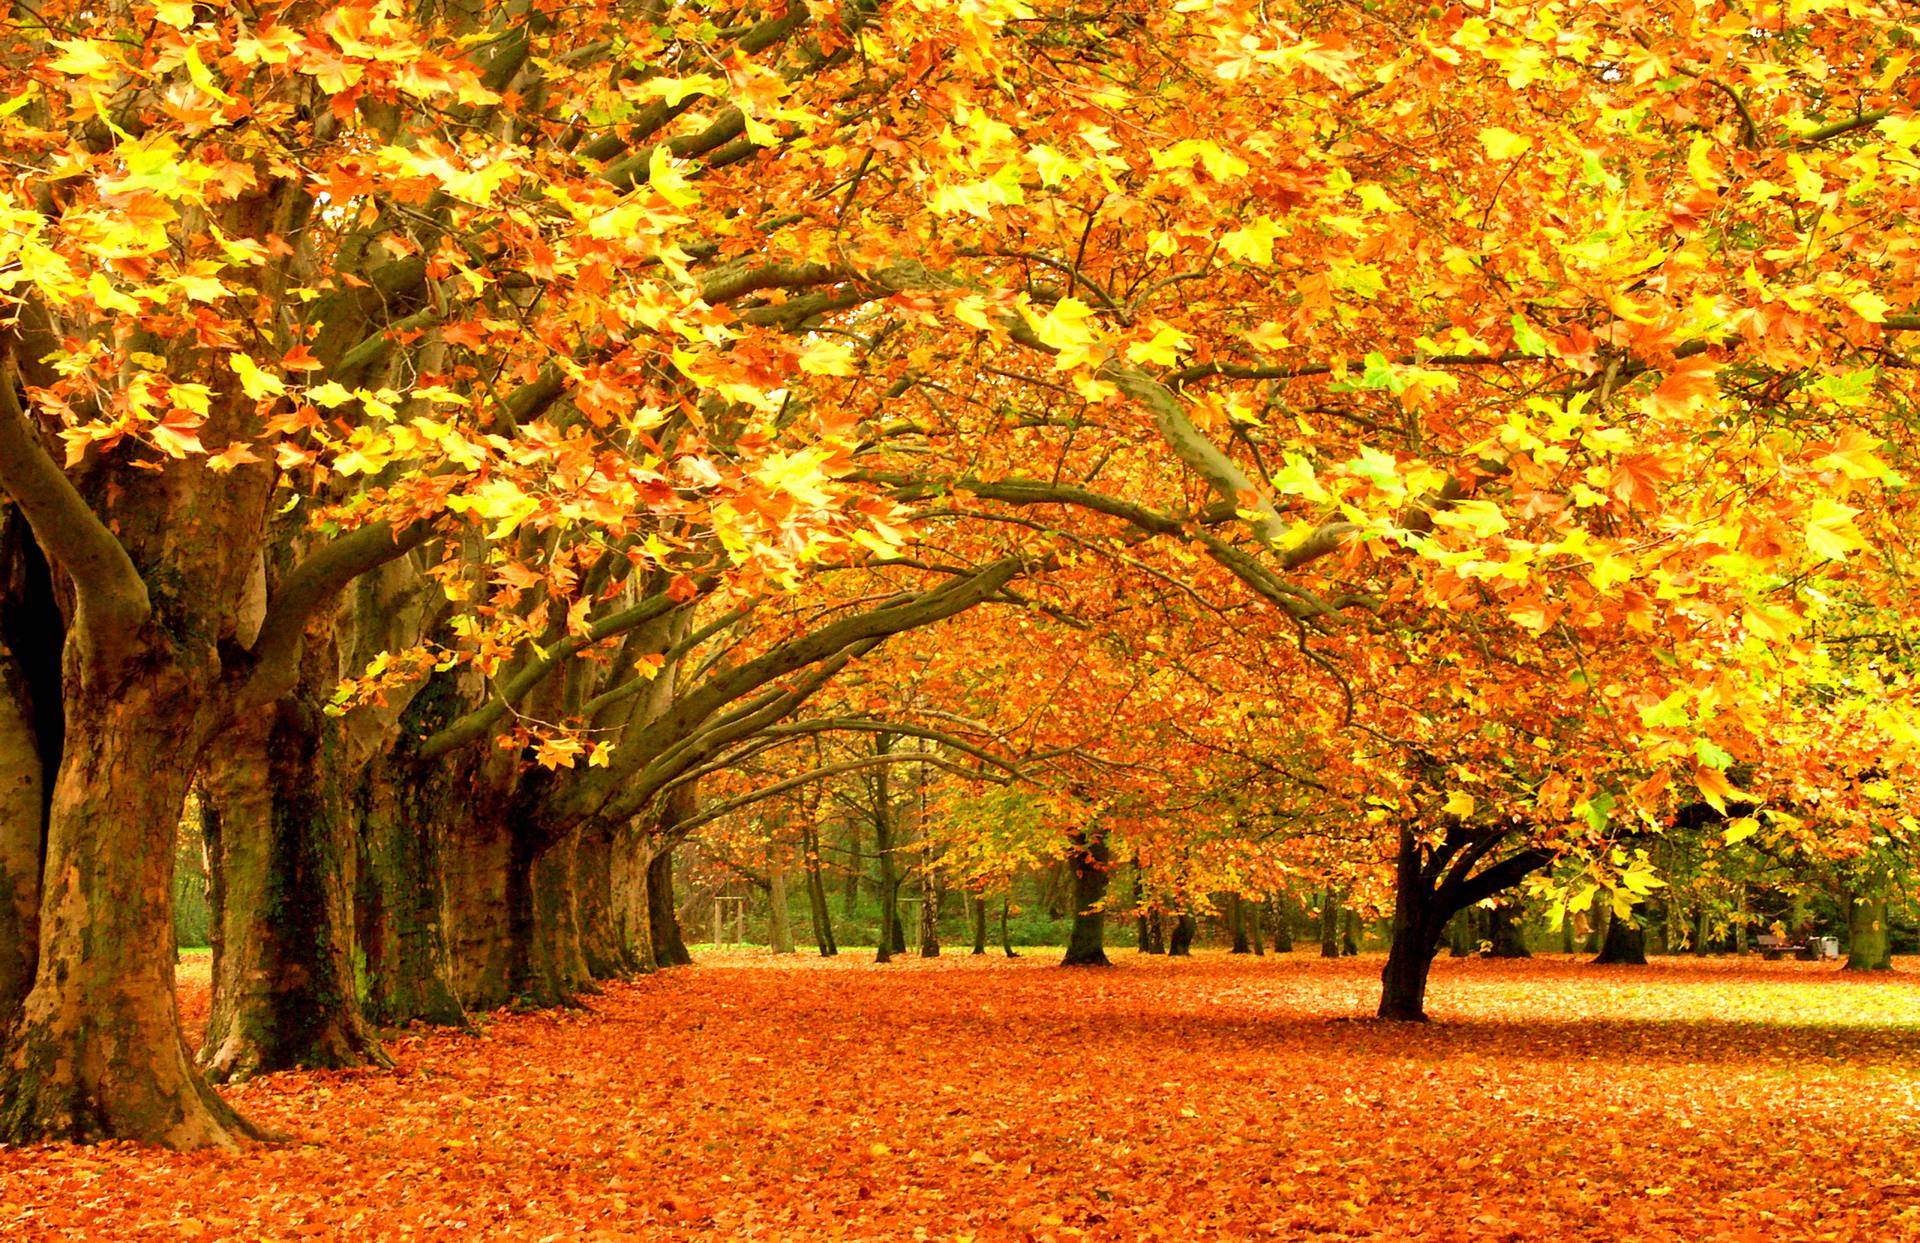 autumn leaves on the bench wallpaper full hd 10831 wallpaper